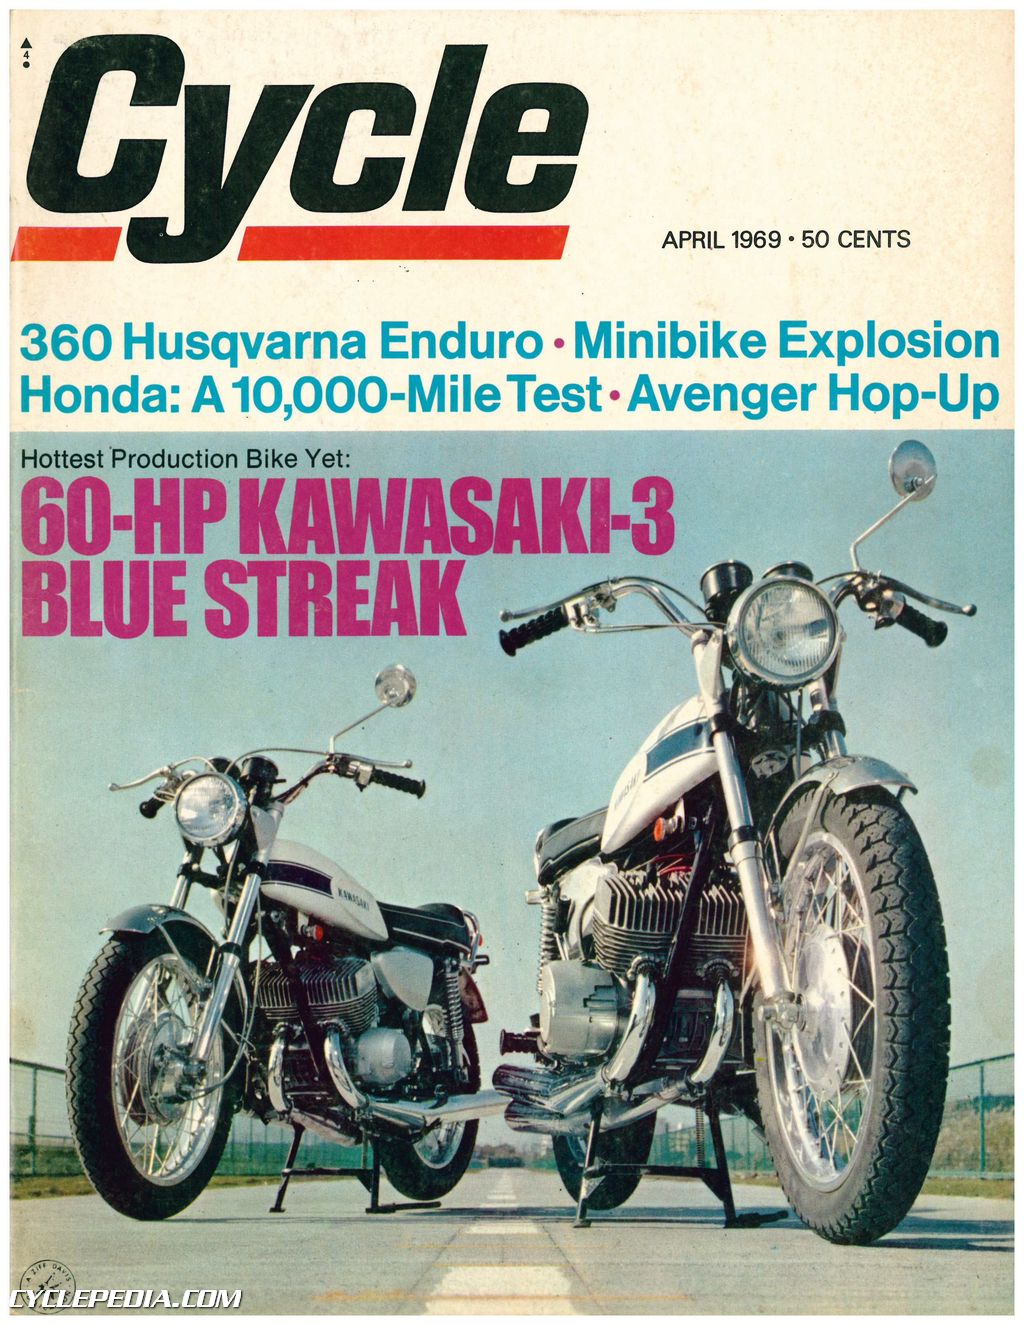 April 1969 Popular Mechanics Magazine Vacation Home Plans: April 1969 Cycle Magazine 60 -Hp Kawasaki-3 Blue Streak